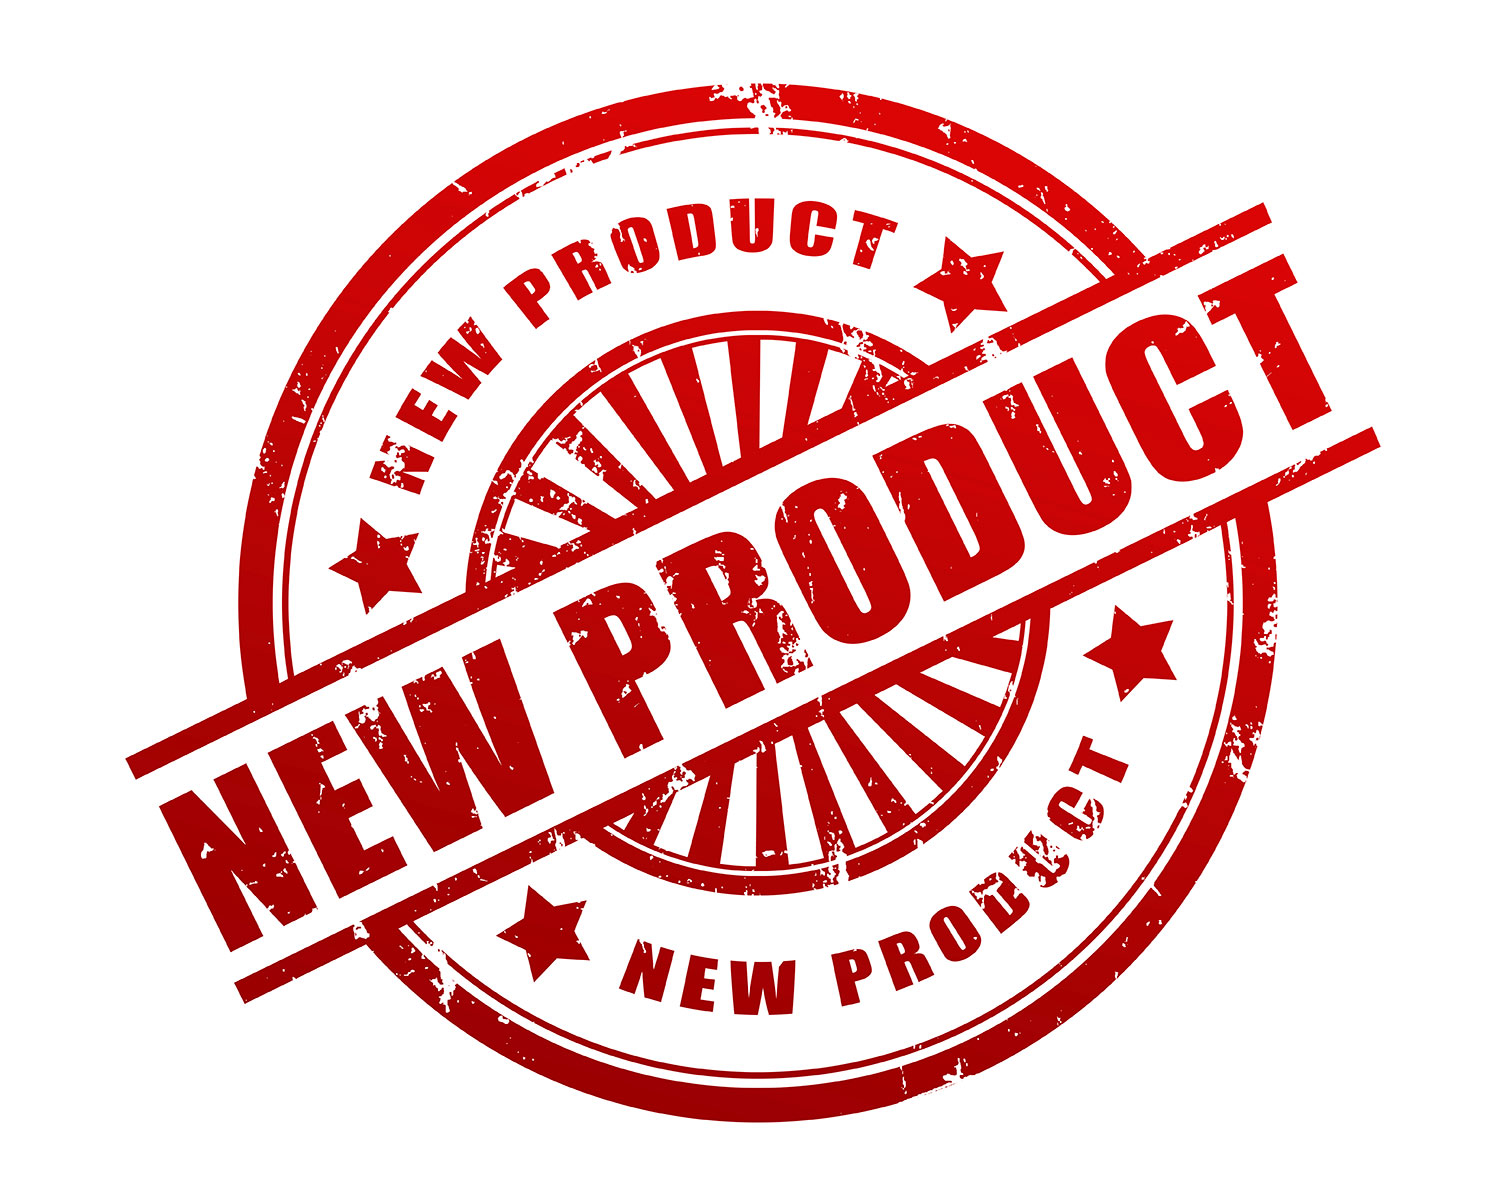 New-Product-Seal.jpg